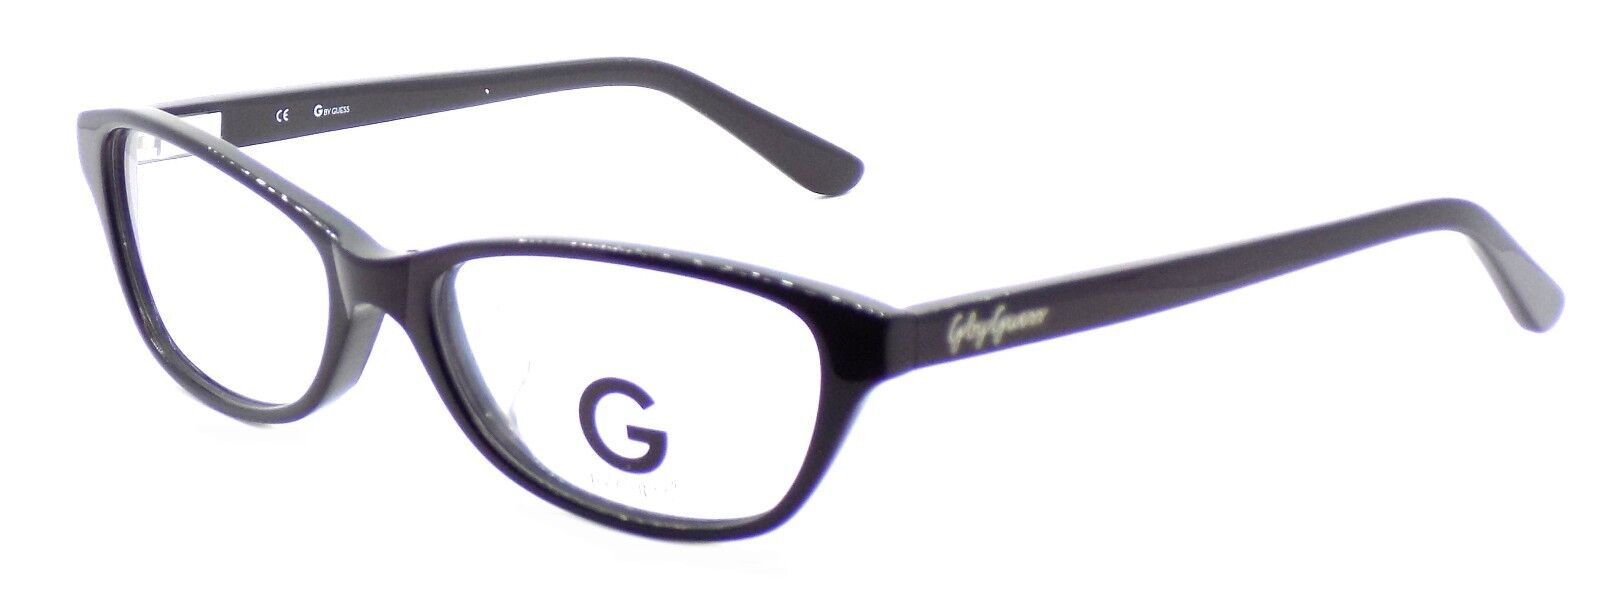 G by Guess GGA103 BLK Women's ASIAN FIT Eyeglasses Frames 51